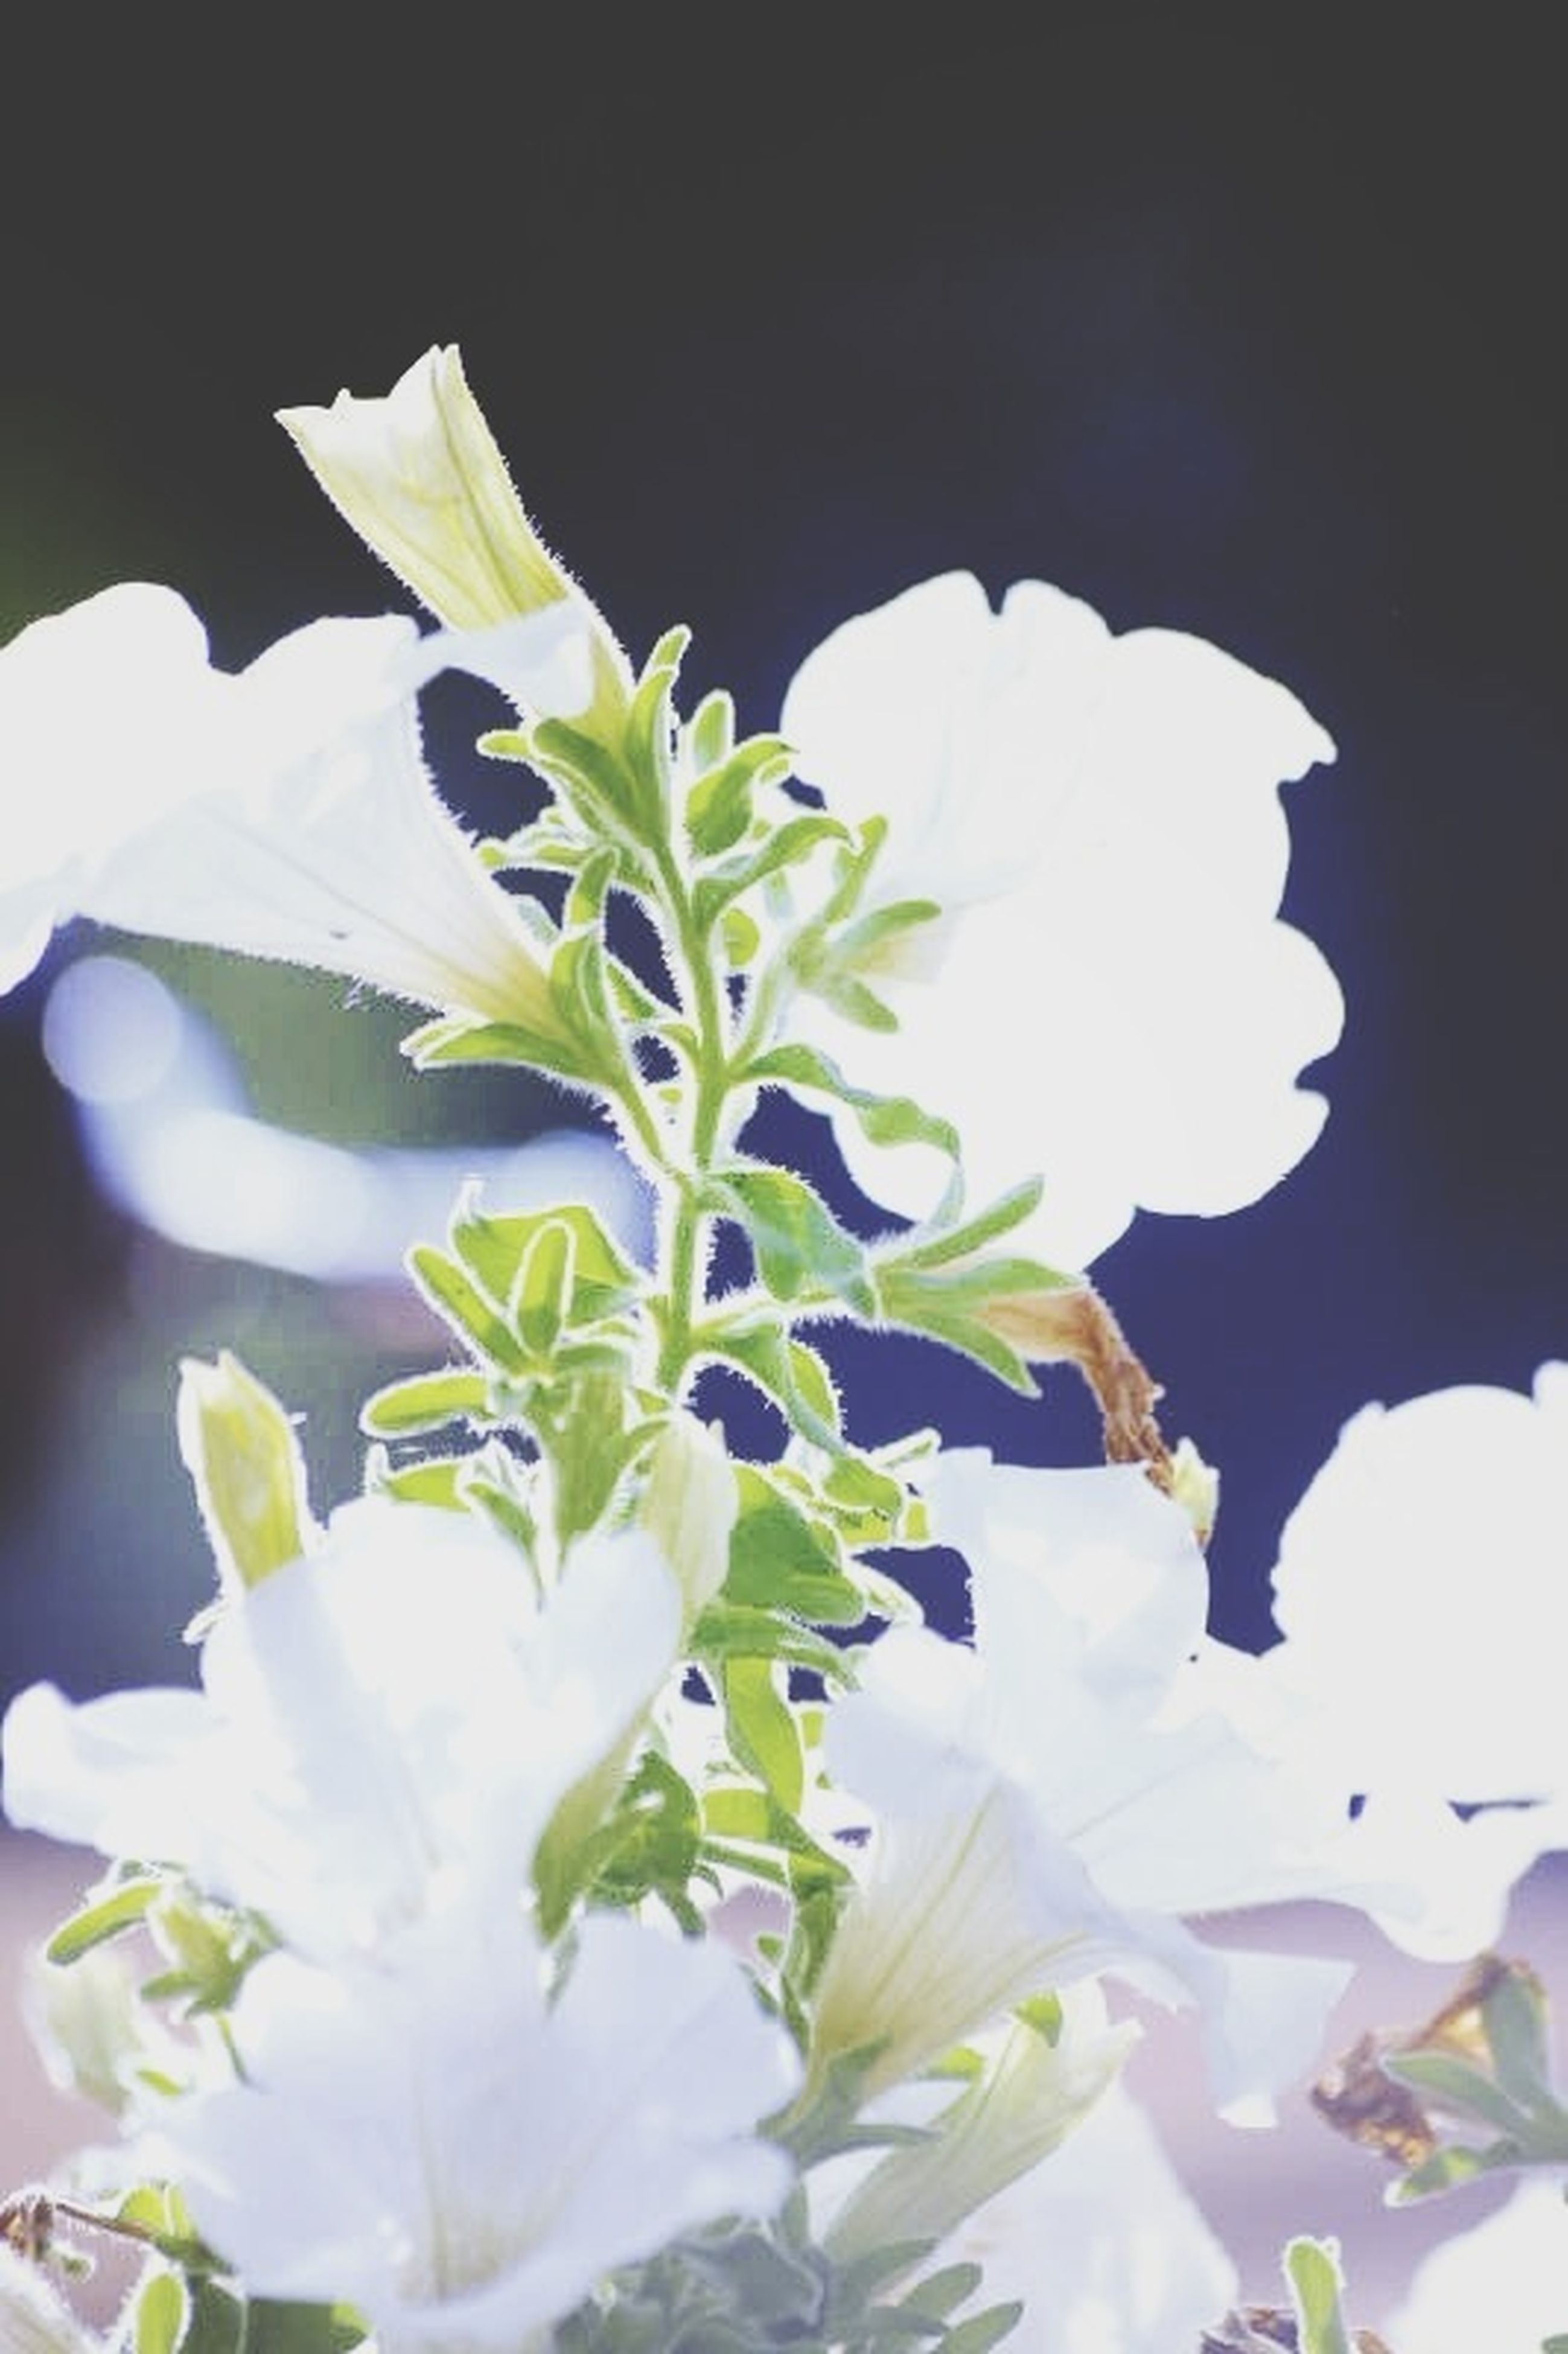 flower, white color, freshness, petal, growth, fragility, beauty in nature, flower head, nature, close-up, plant, leaf, blooming, white, in bloom, blossom, studio shot, no people, focus on foreground, botany